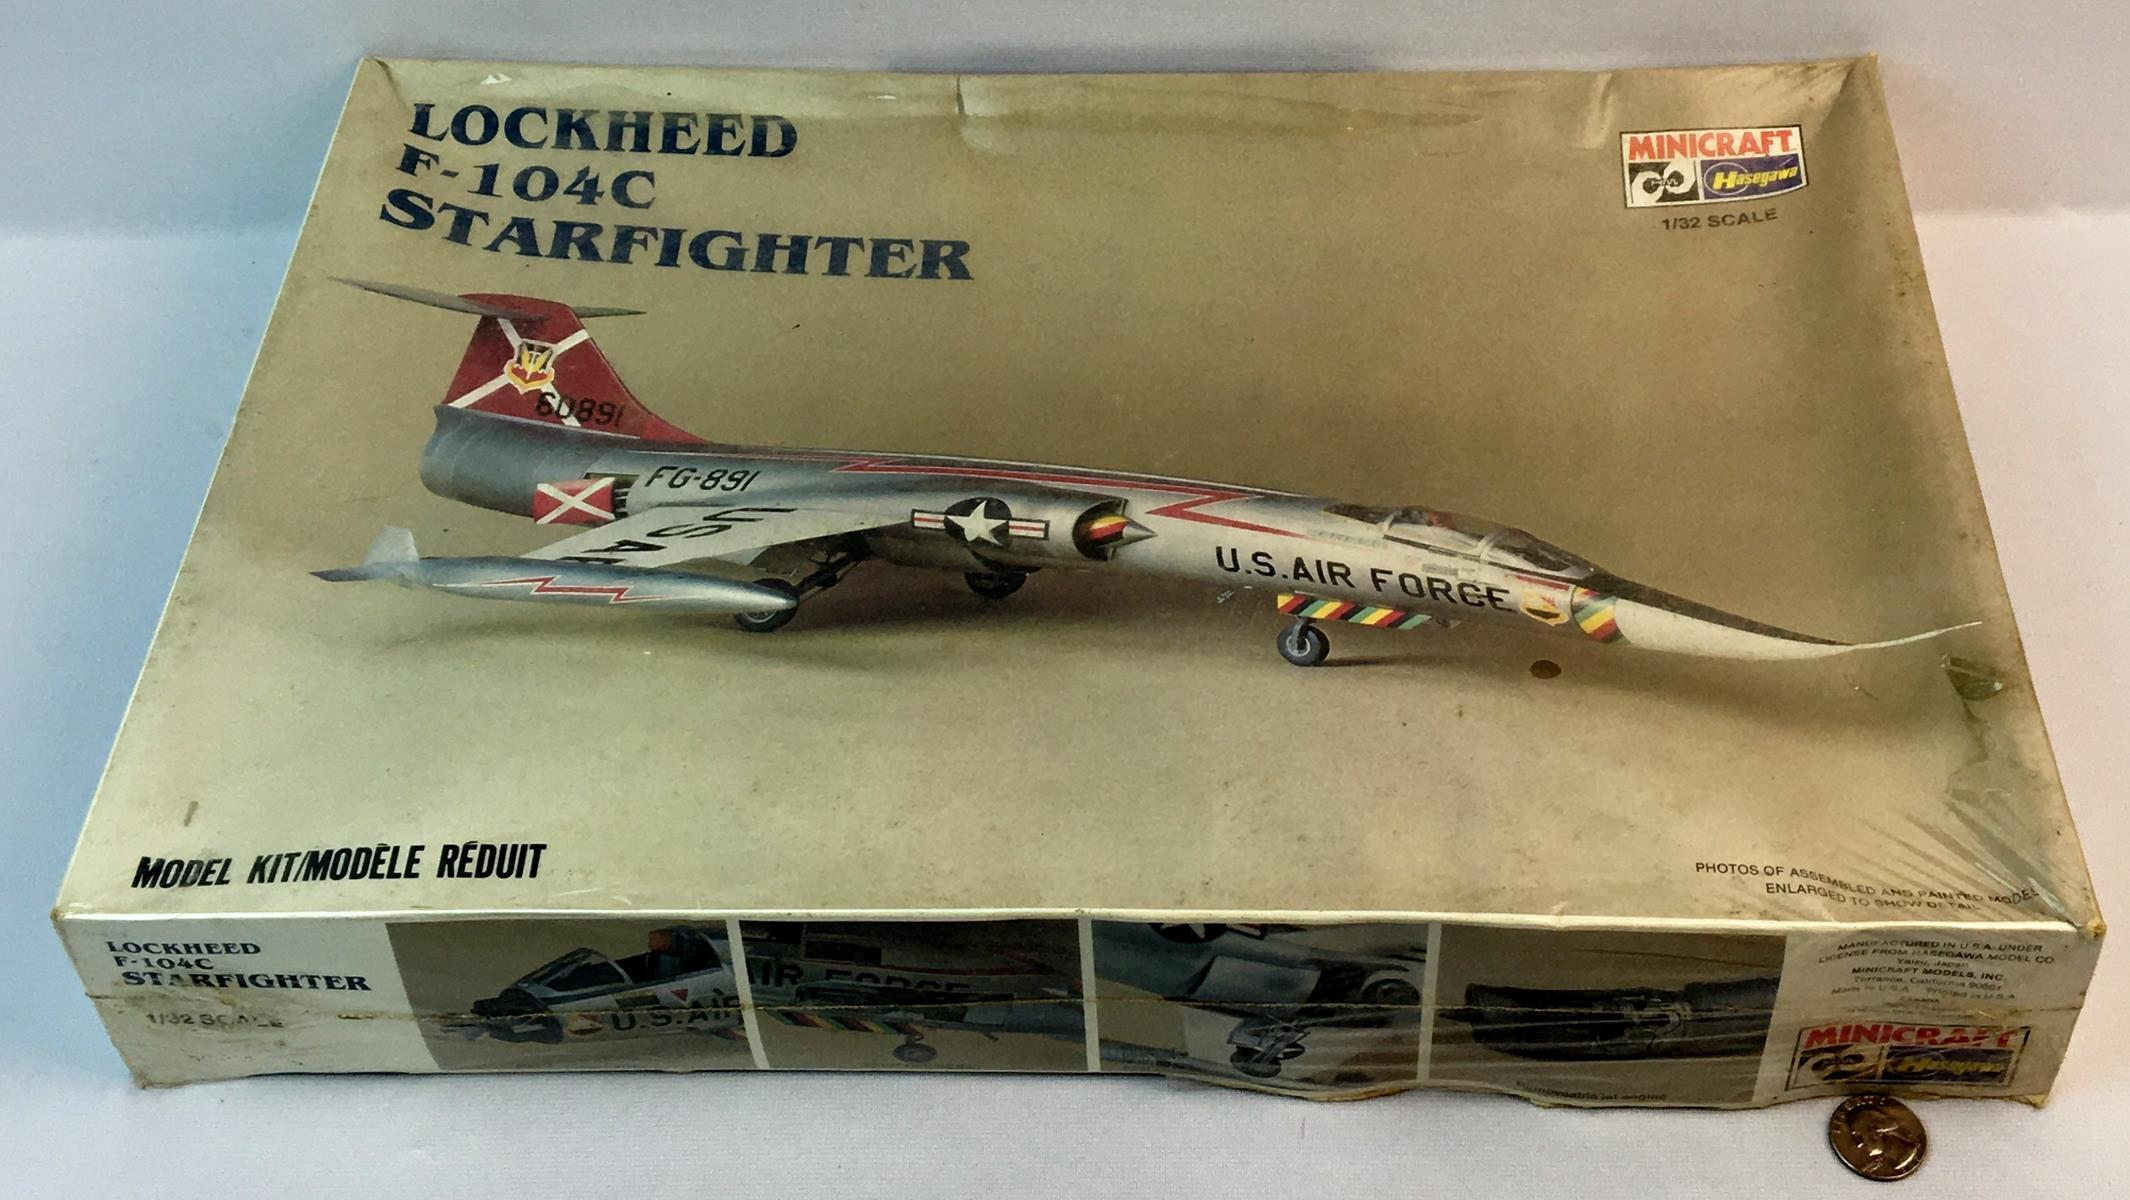 Vintage 1980's Lockheed F-104C Starfighter 1/32 Scale Hasegawa Minicraft Model Kit SEALED